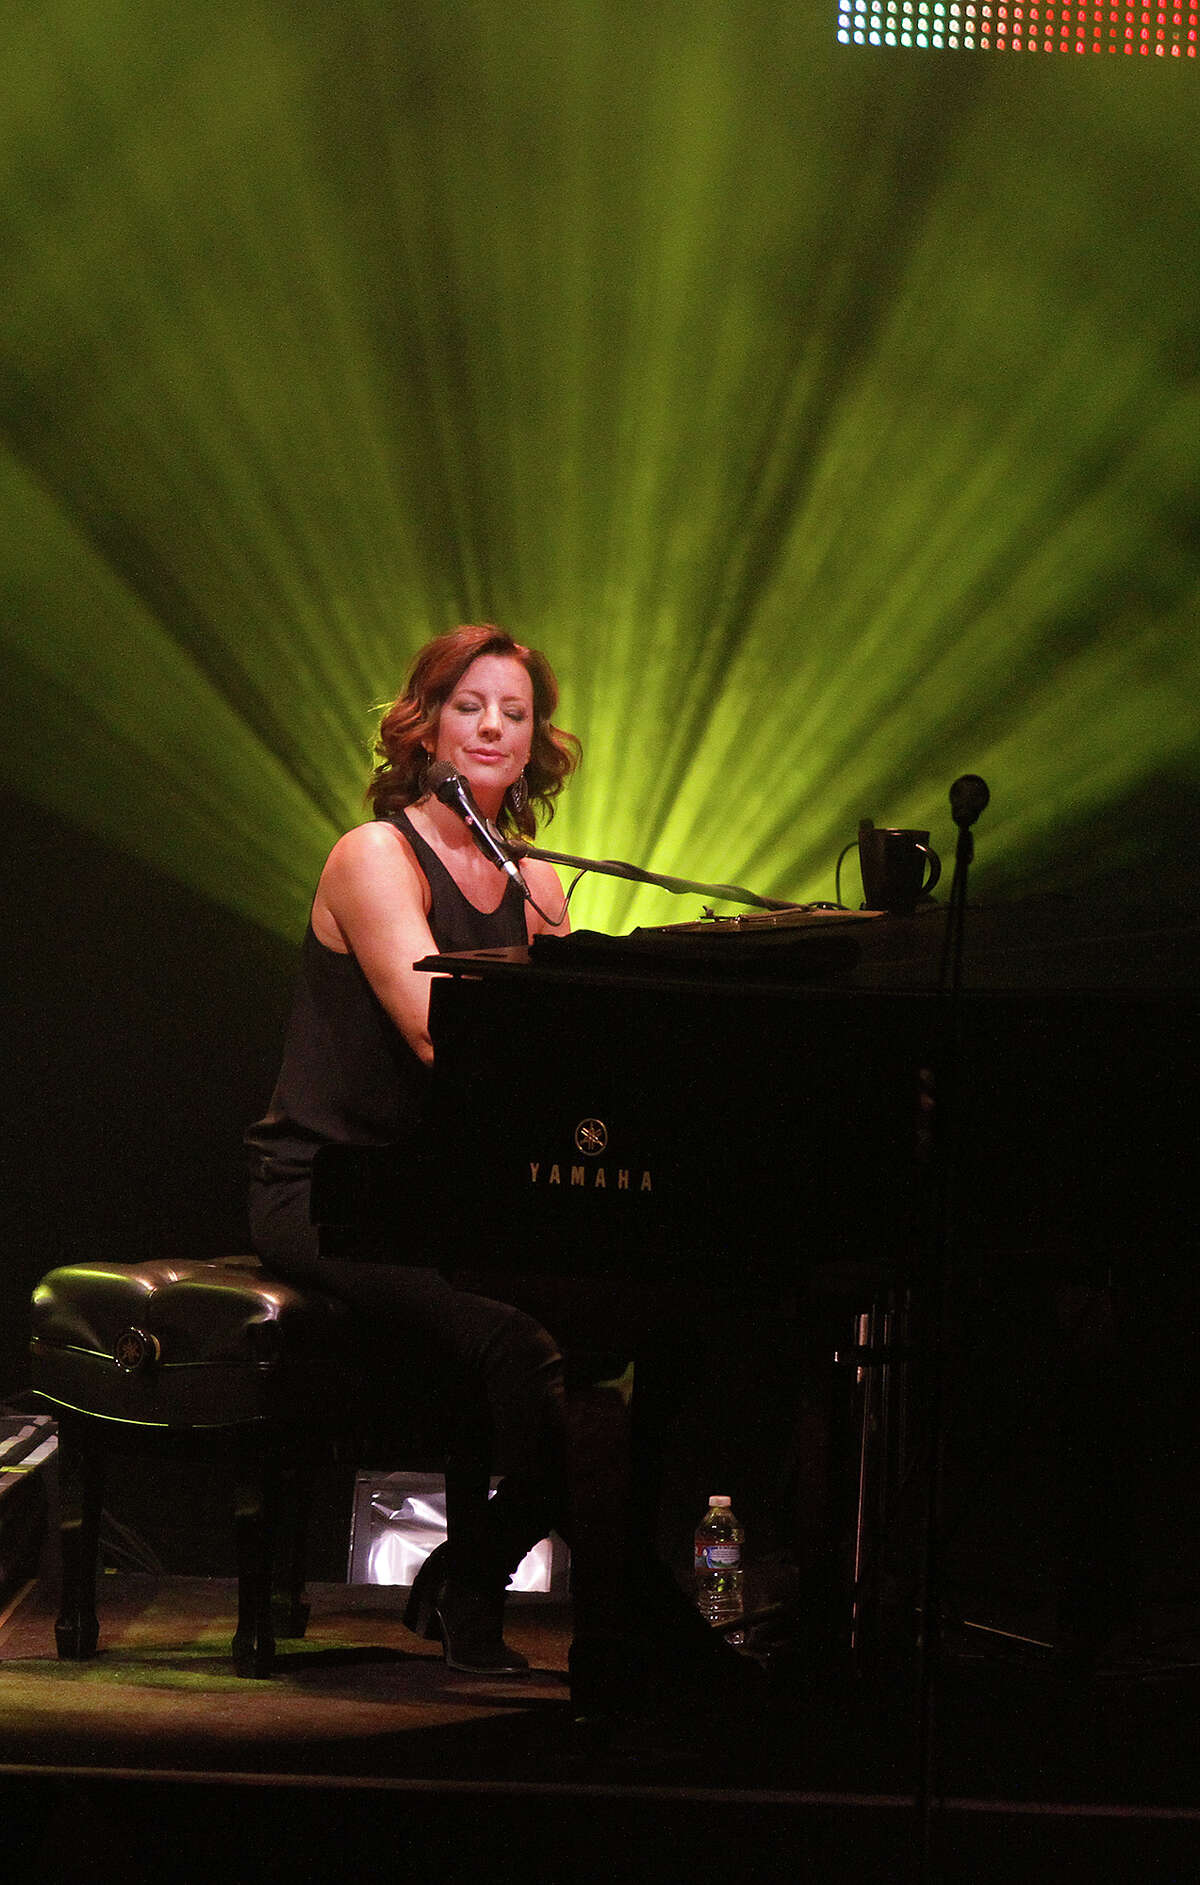 Sarah McLachlan performs a sold out show at the Majestic Theatre, Friday, Feb. 27, 2015 as part of her Shine On tour.